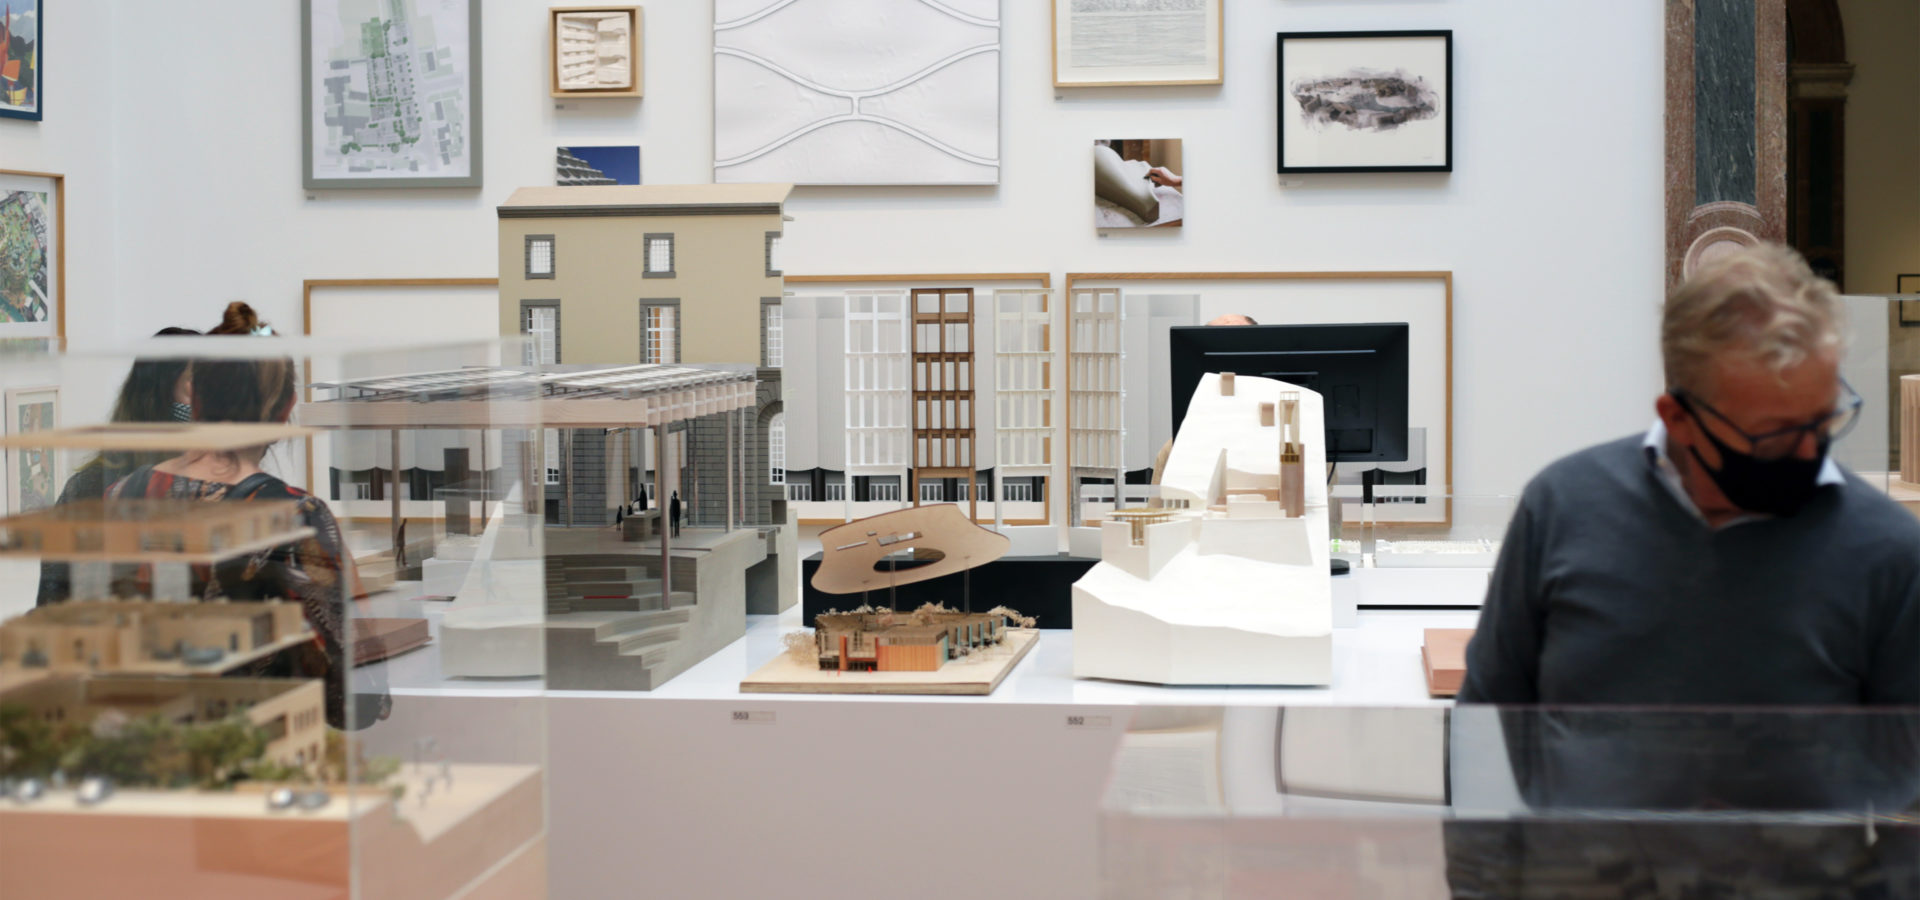 Ra Summer Exhibition Royal Academy Of Arts Faulknerbrowns Architects Sunderland City Hall Models Architecture Room Hh